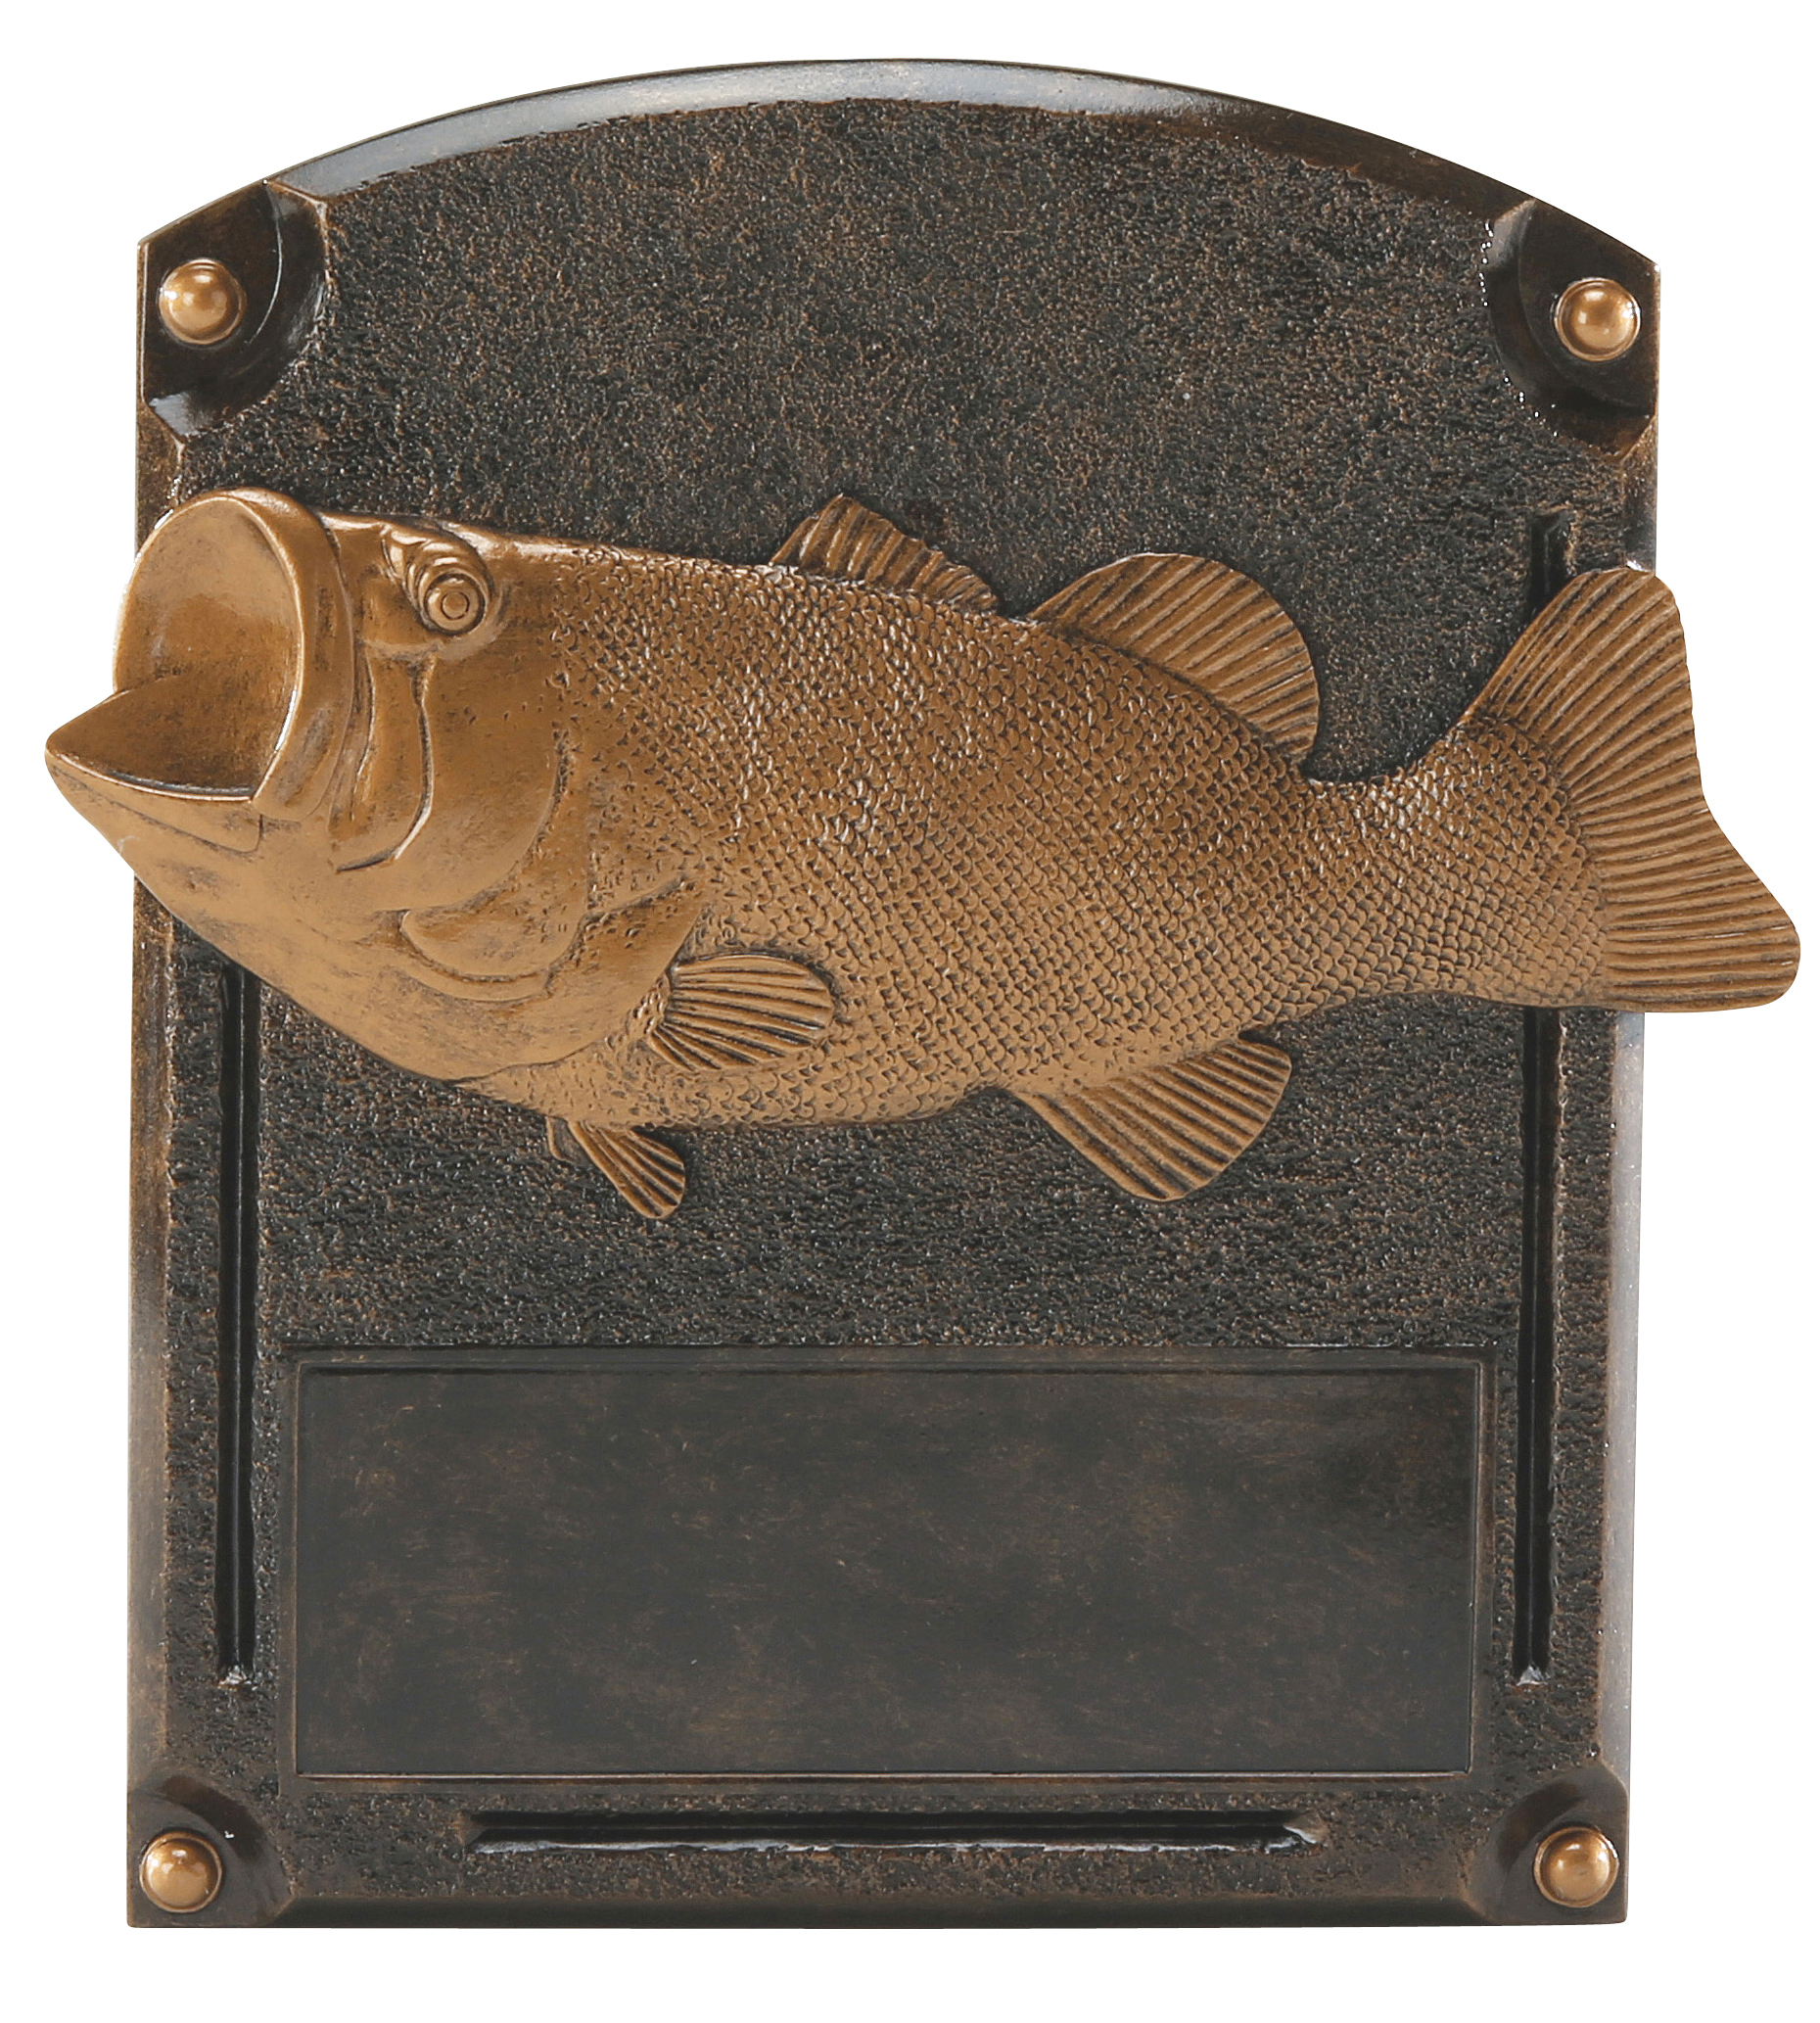 Bass Fishing   Large - 54724GS  Small - not available